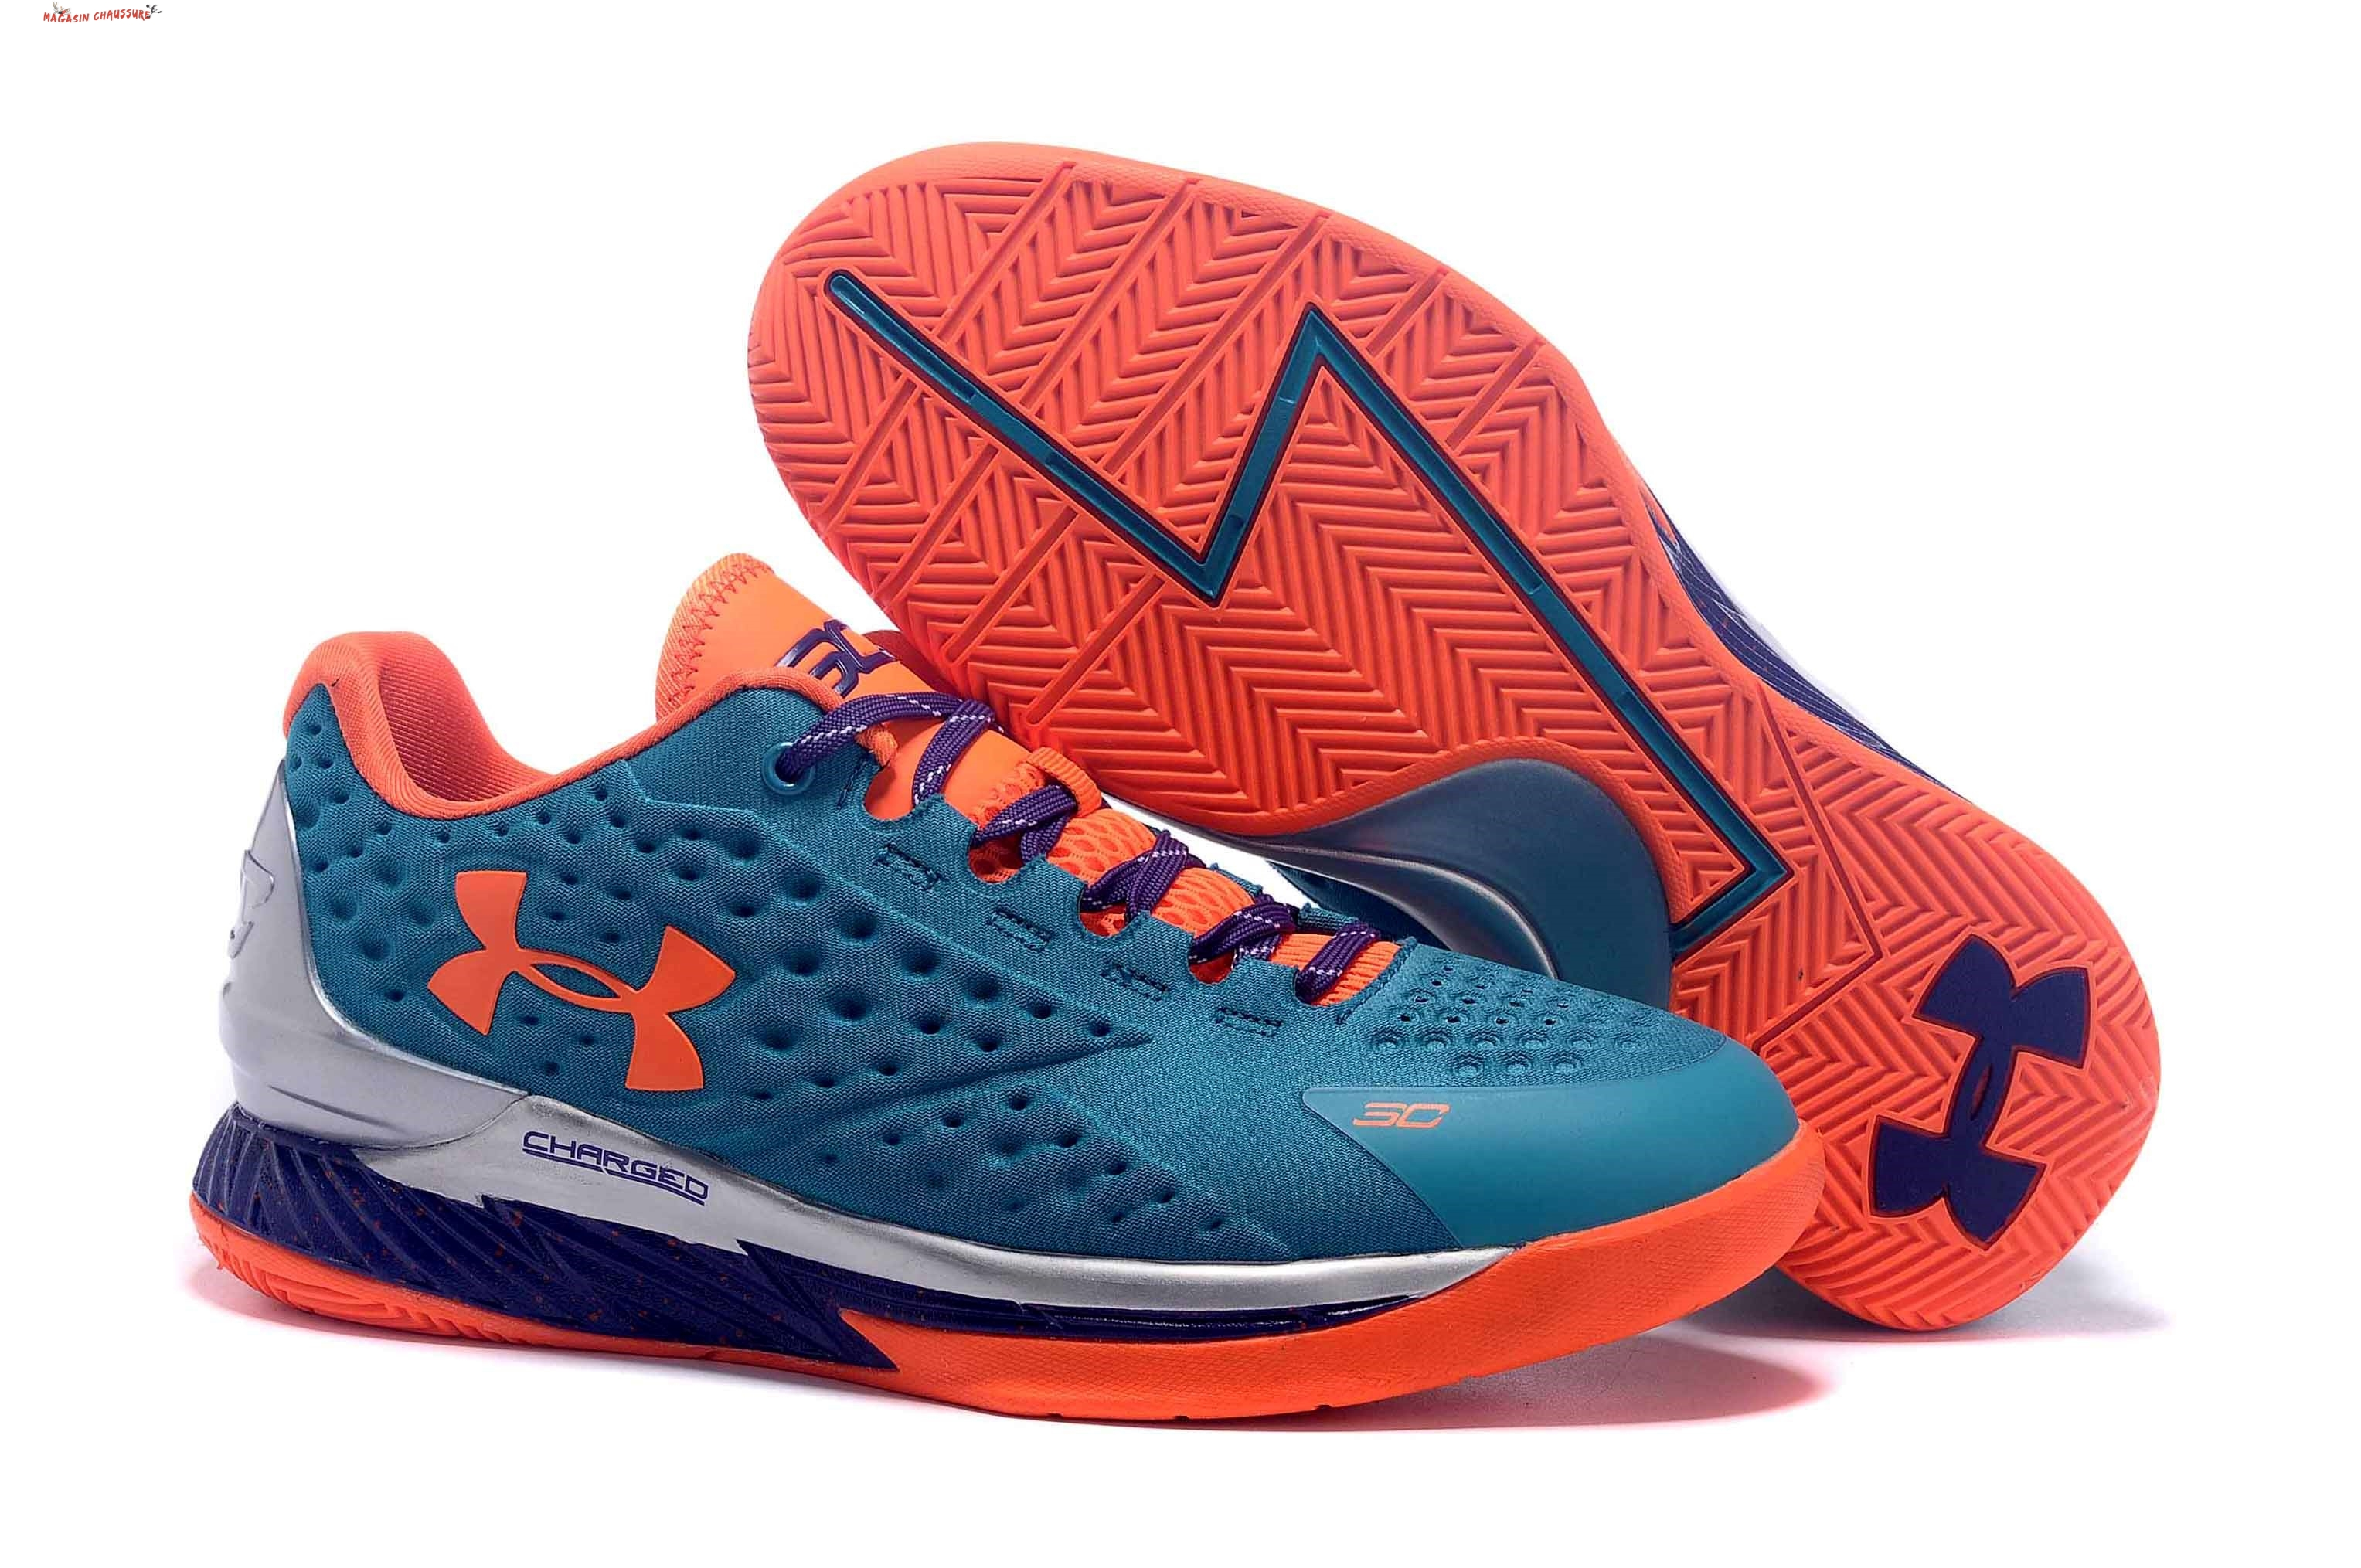 Stephen Curry 1 - Femme Bleu Orange Chaussure de Basket